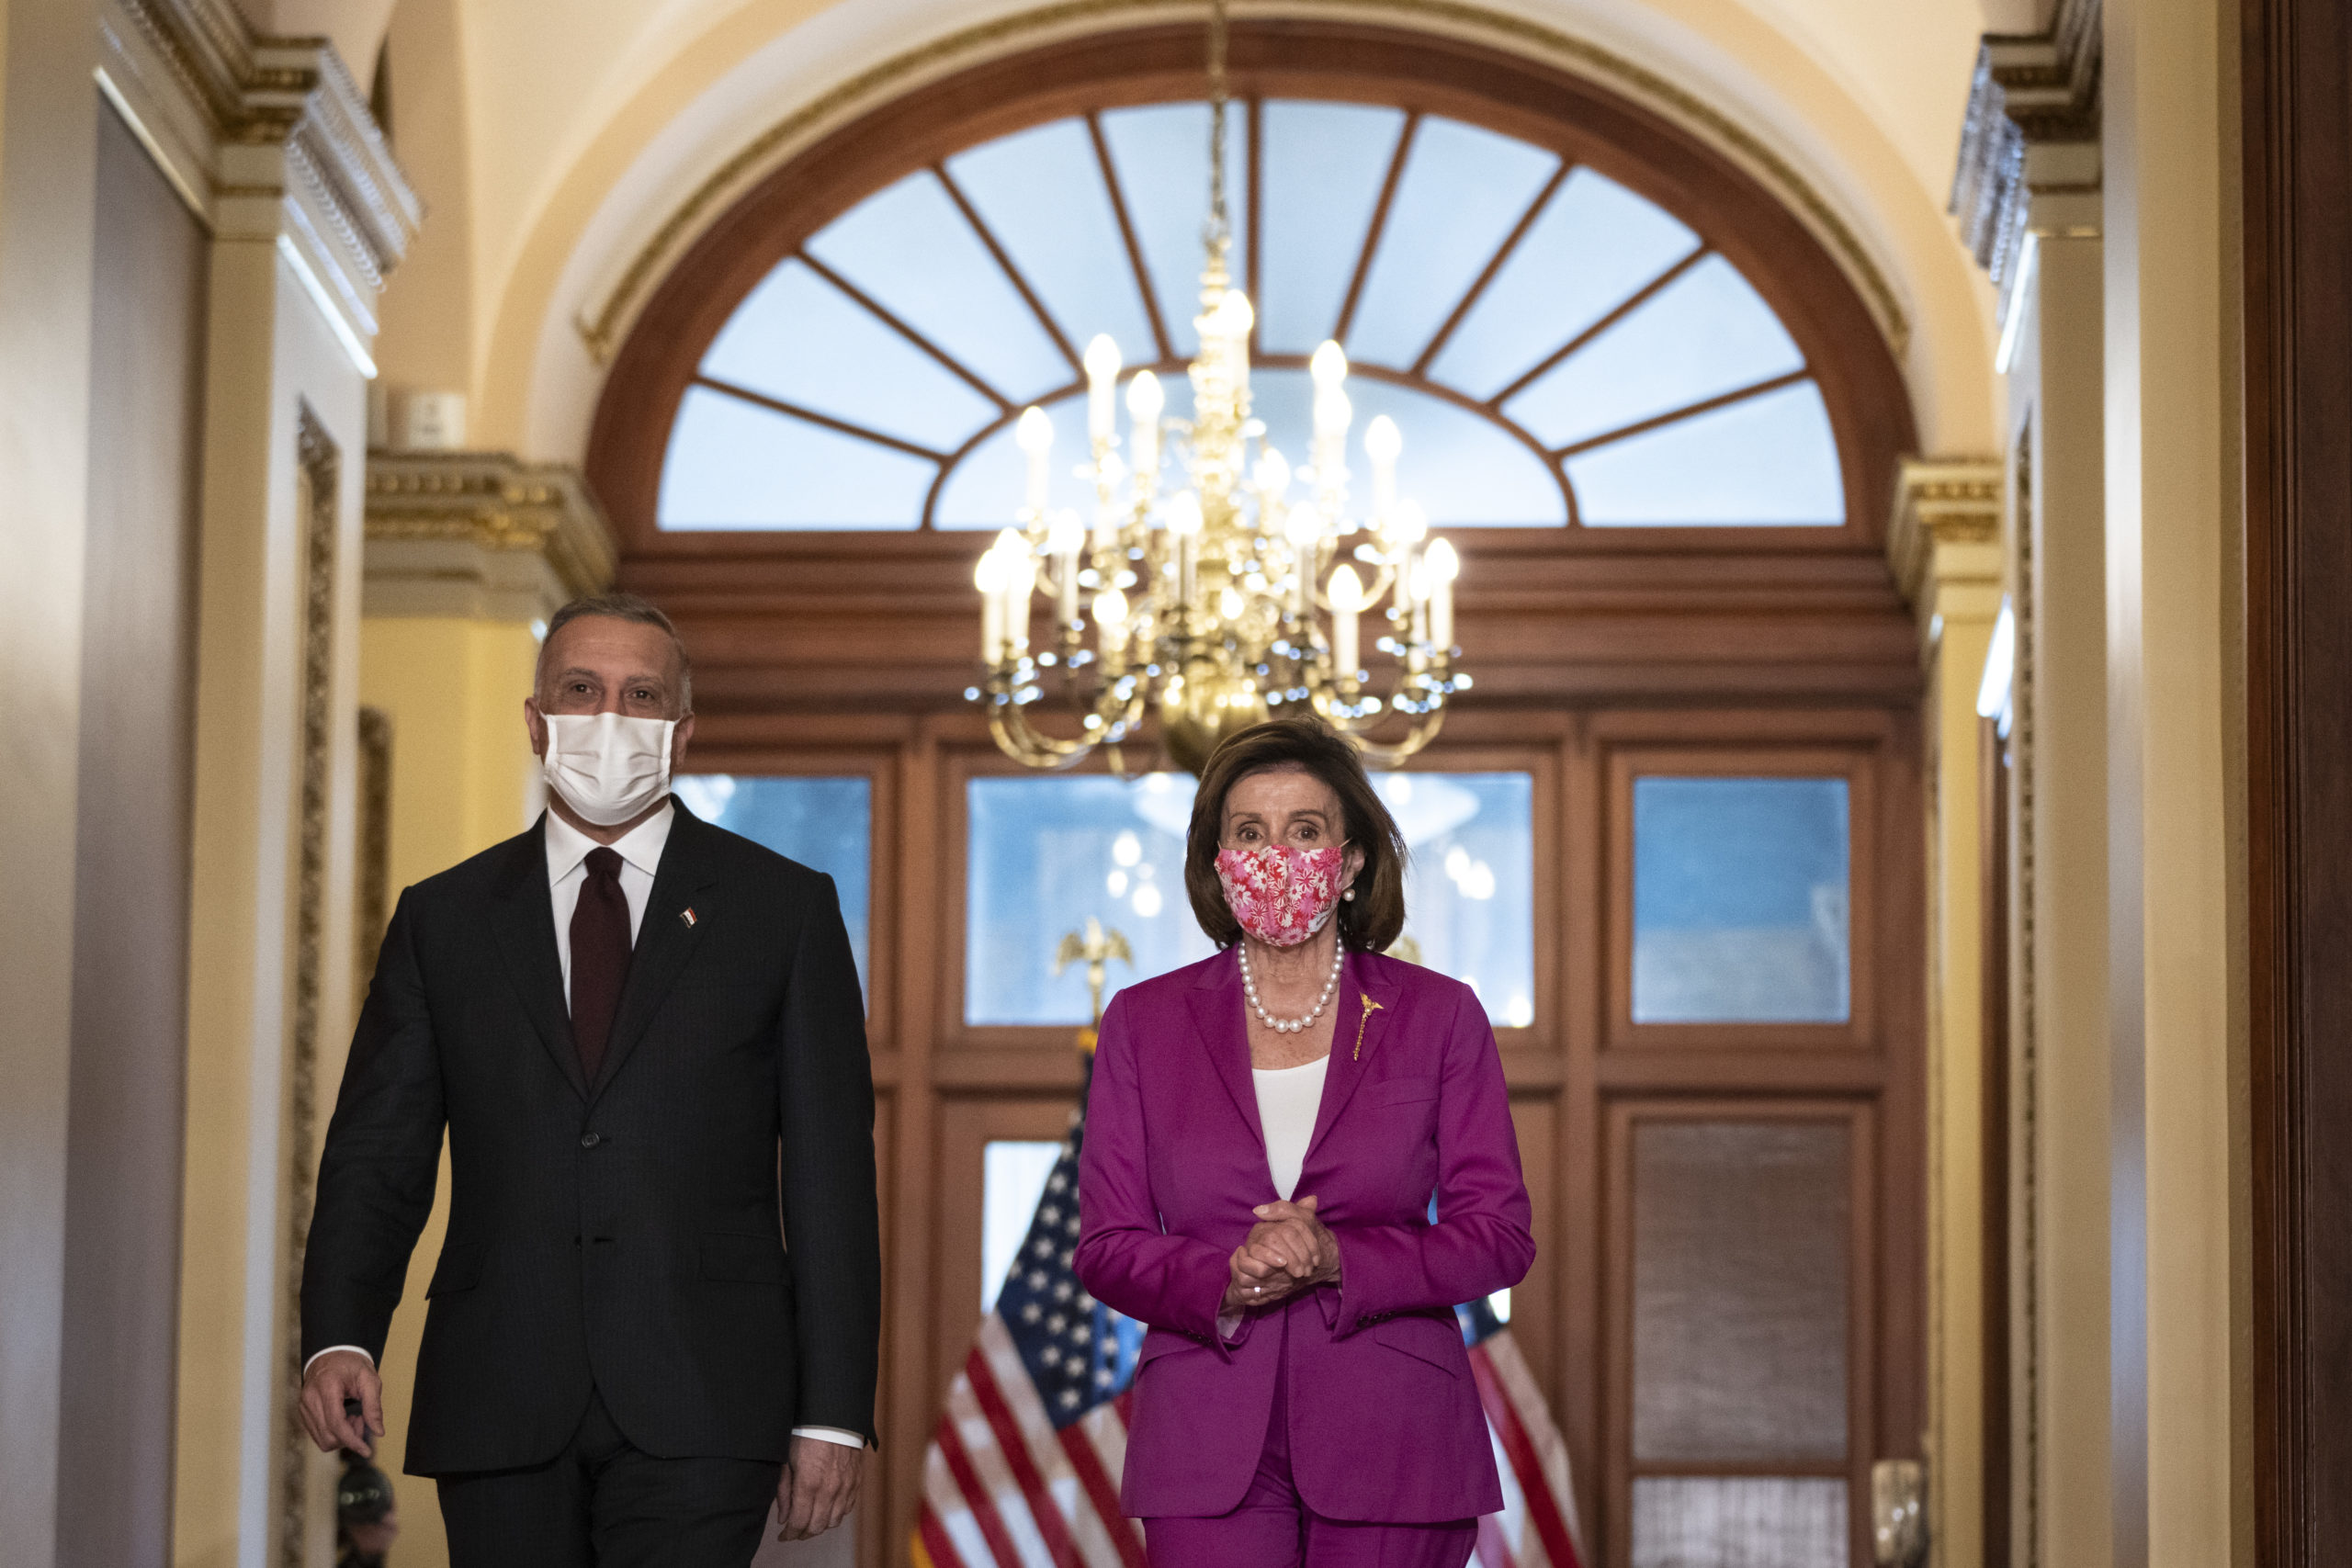 (L-R) Iraqi Prime Minister Mustafa al-Kadhimi and Speaker of the House Nancy Pelosi (D-CA) arrive to speak briefly to the press outside of her office at the U.S. Capitol on July 28, 2021 in Washington, DC. (Photo by Drew Angerer/Getty Images)